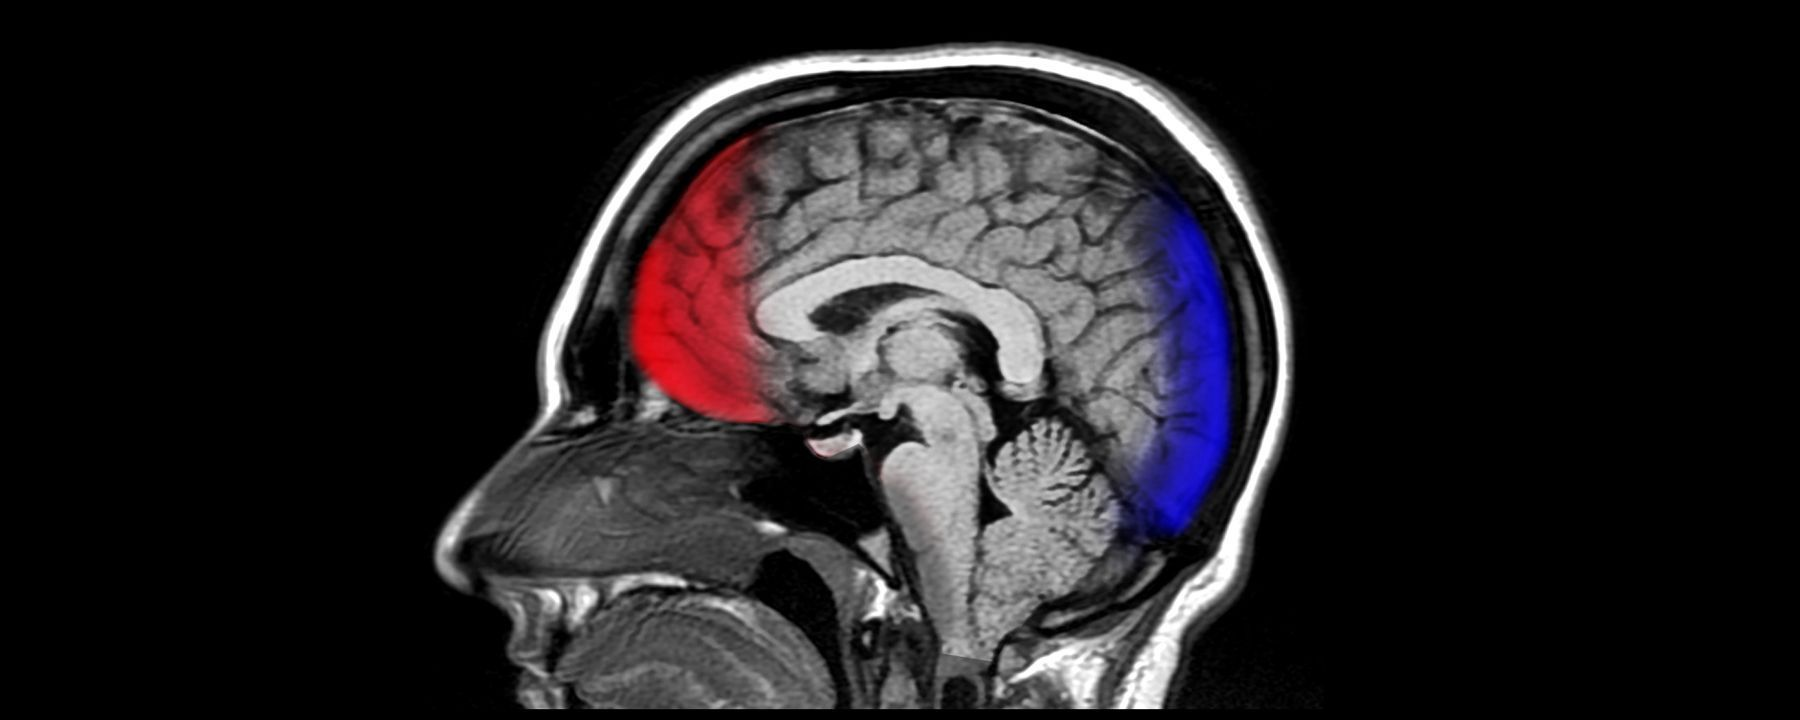 Exosomes in Blood Indicate Mild TBI: Study